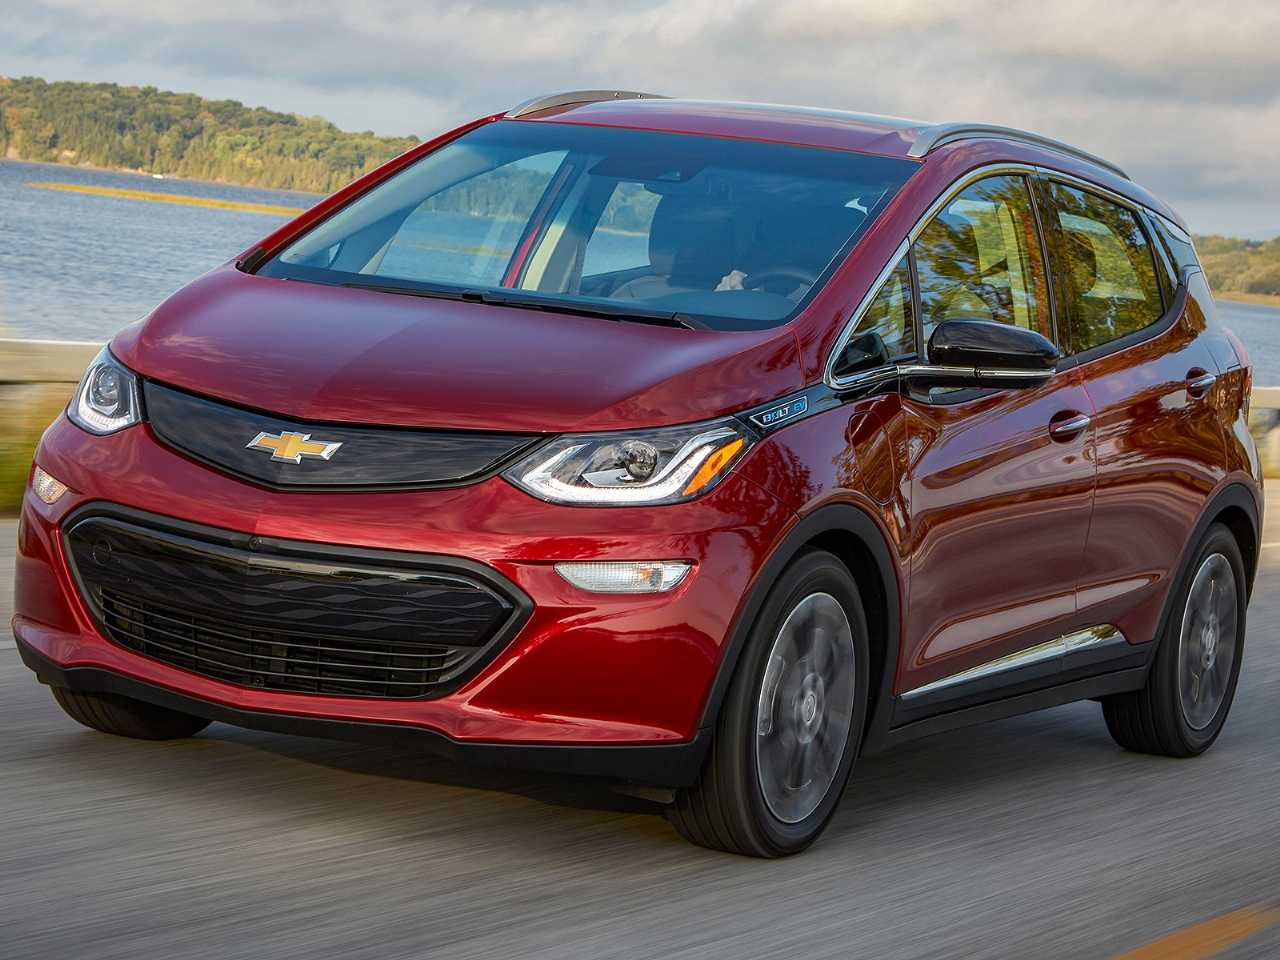 Chevrolet Bolt 2019 - ângulo frontal